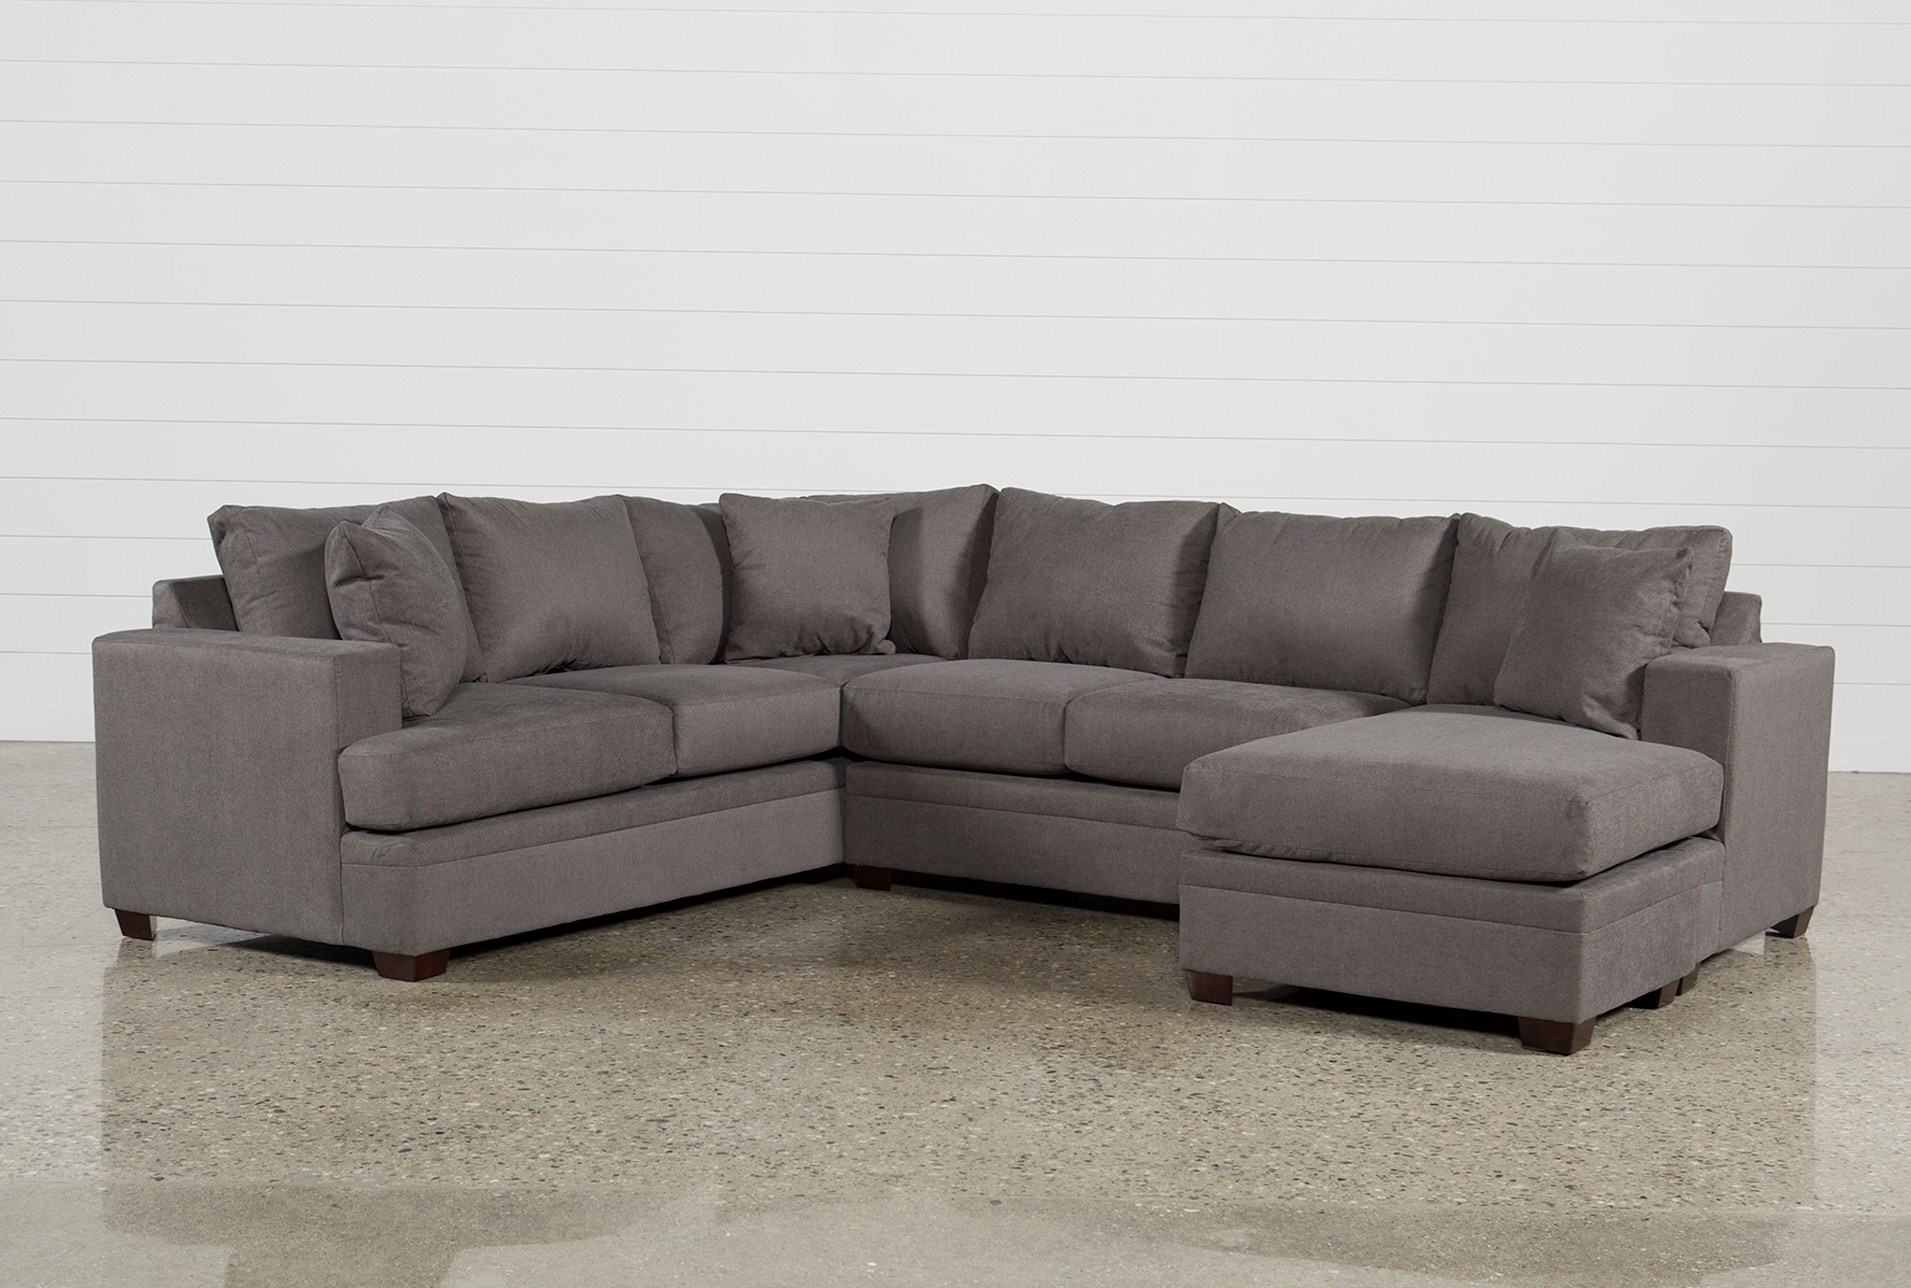 Kerri sofa 2 piece sectional with right arm facing chaise